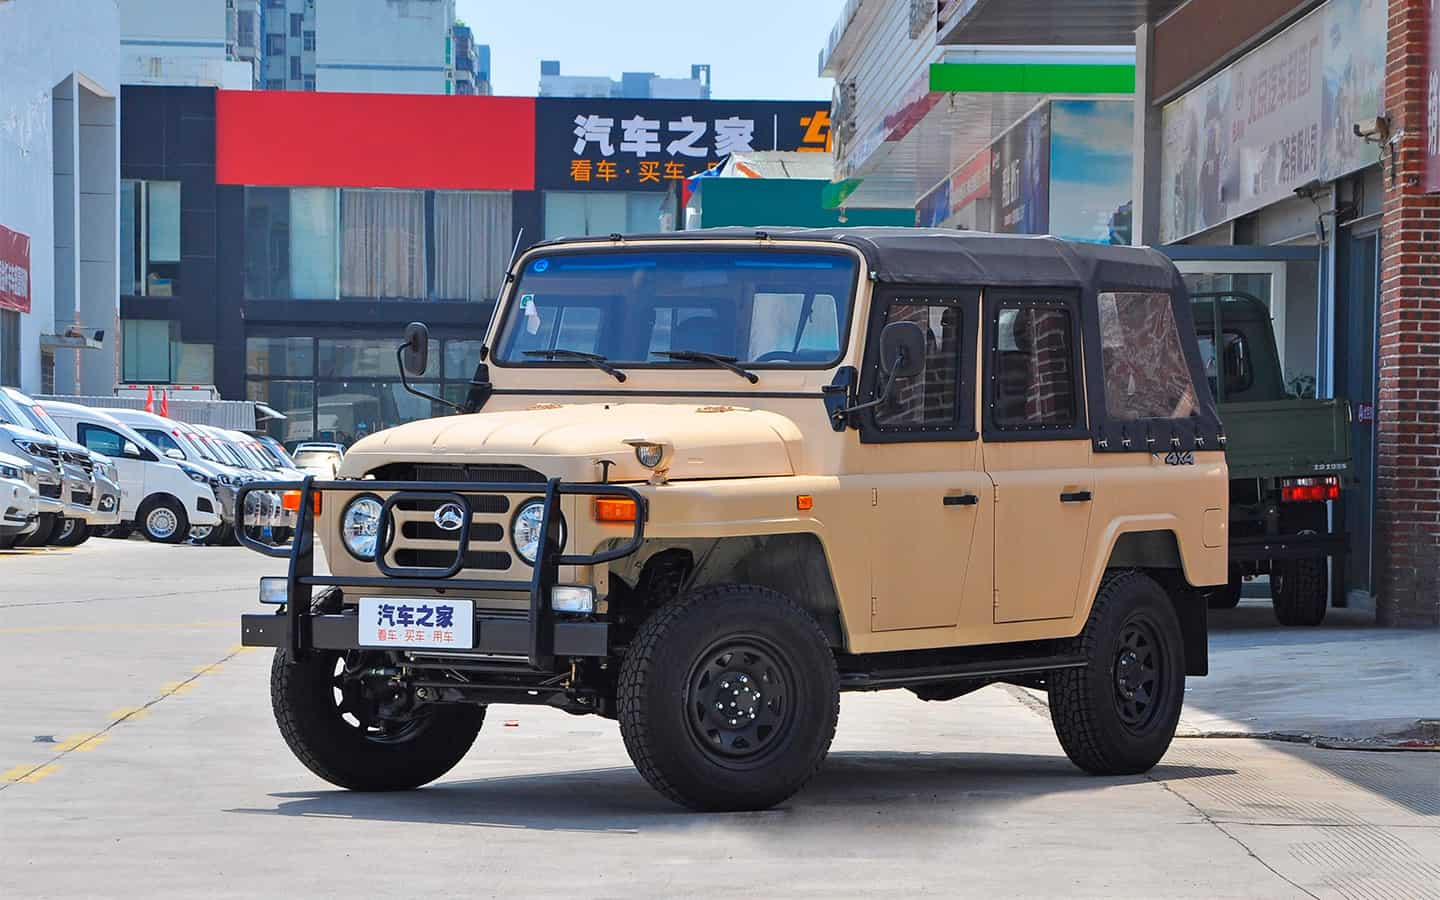 Chinese counterpart of UAZ received a 211-horsepower turbo engine